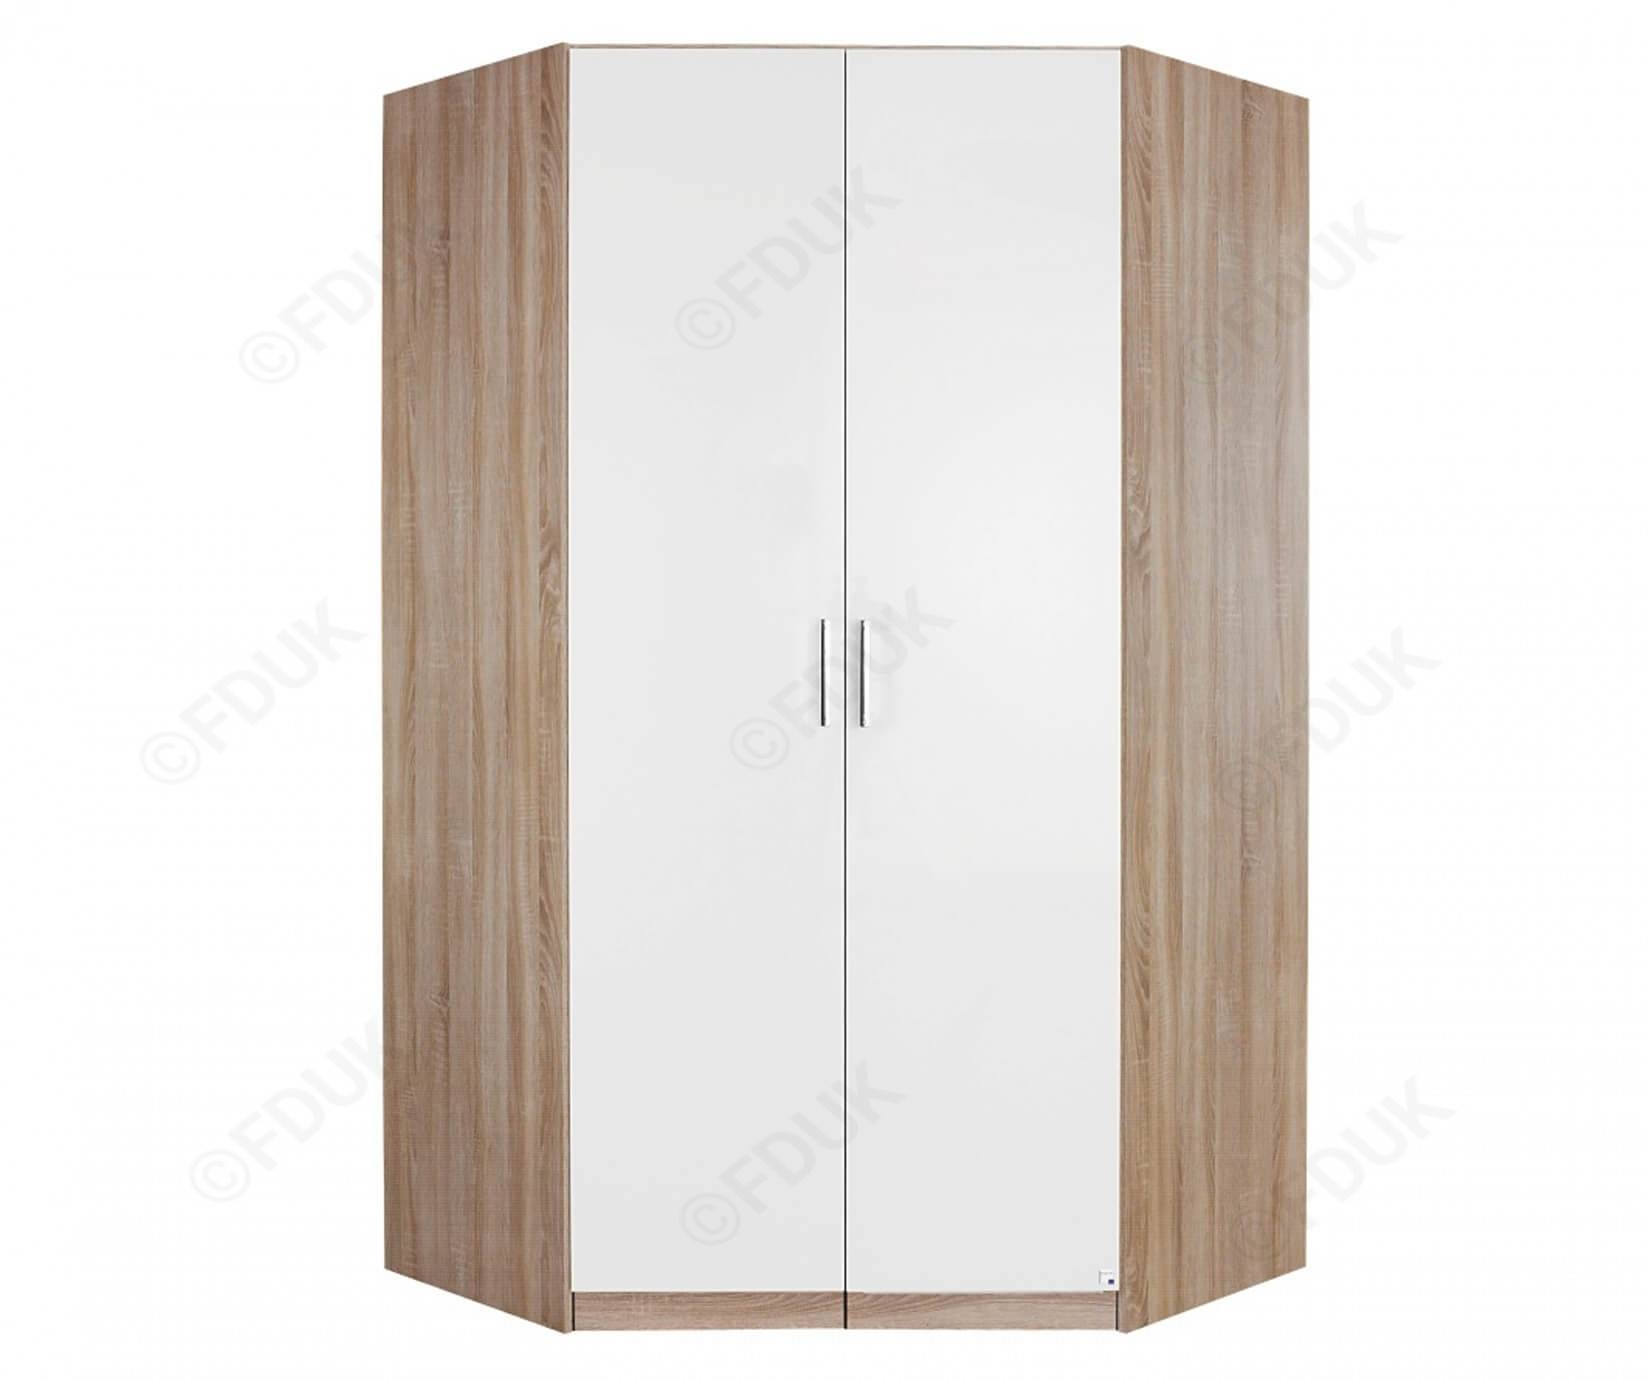 Rauch Furniture Samos | Samos Single Door Corner Wardrobe for 1 Door Corner Wardrobes (Image 11 of 15)